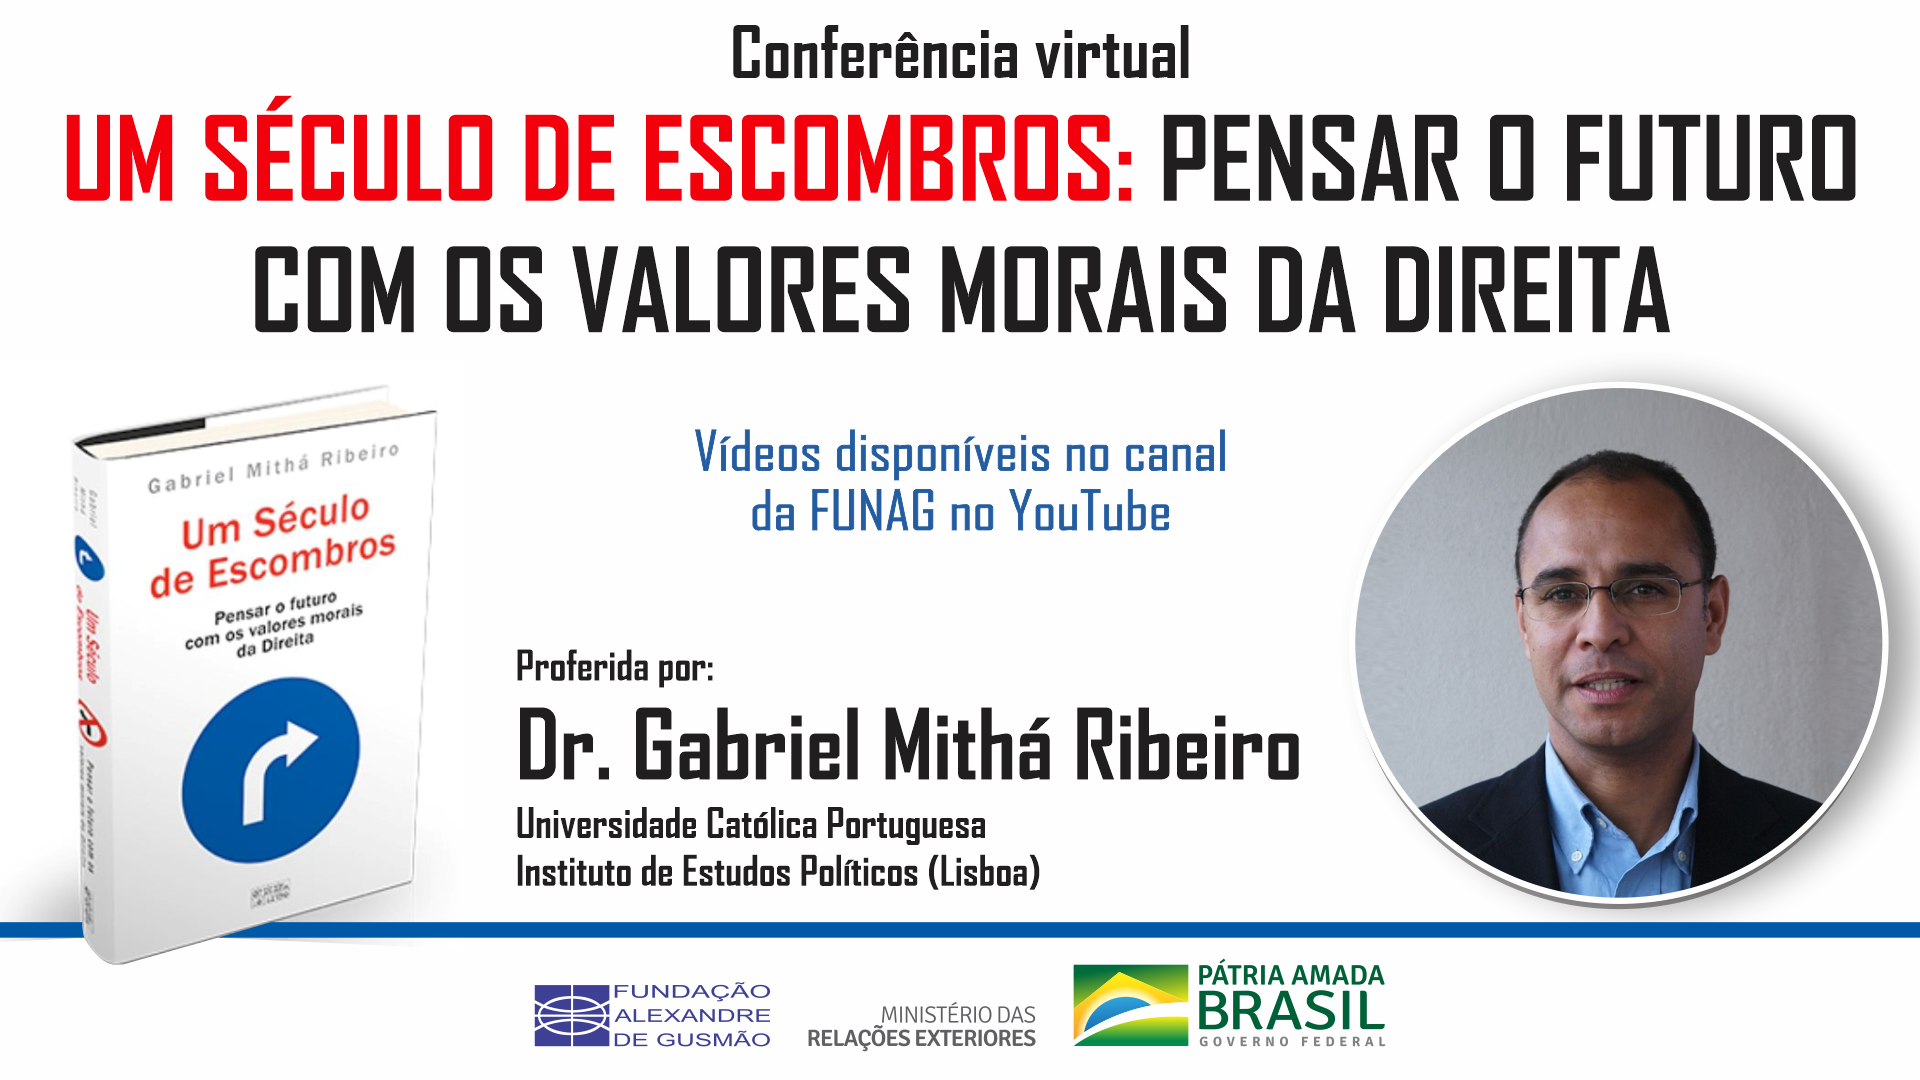 Watch the videos of the conference on a century of debris: considering the future with the moral values of the right